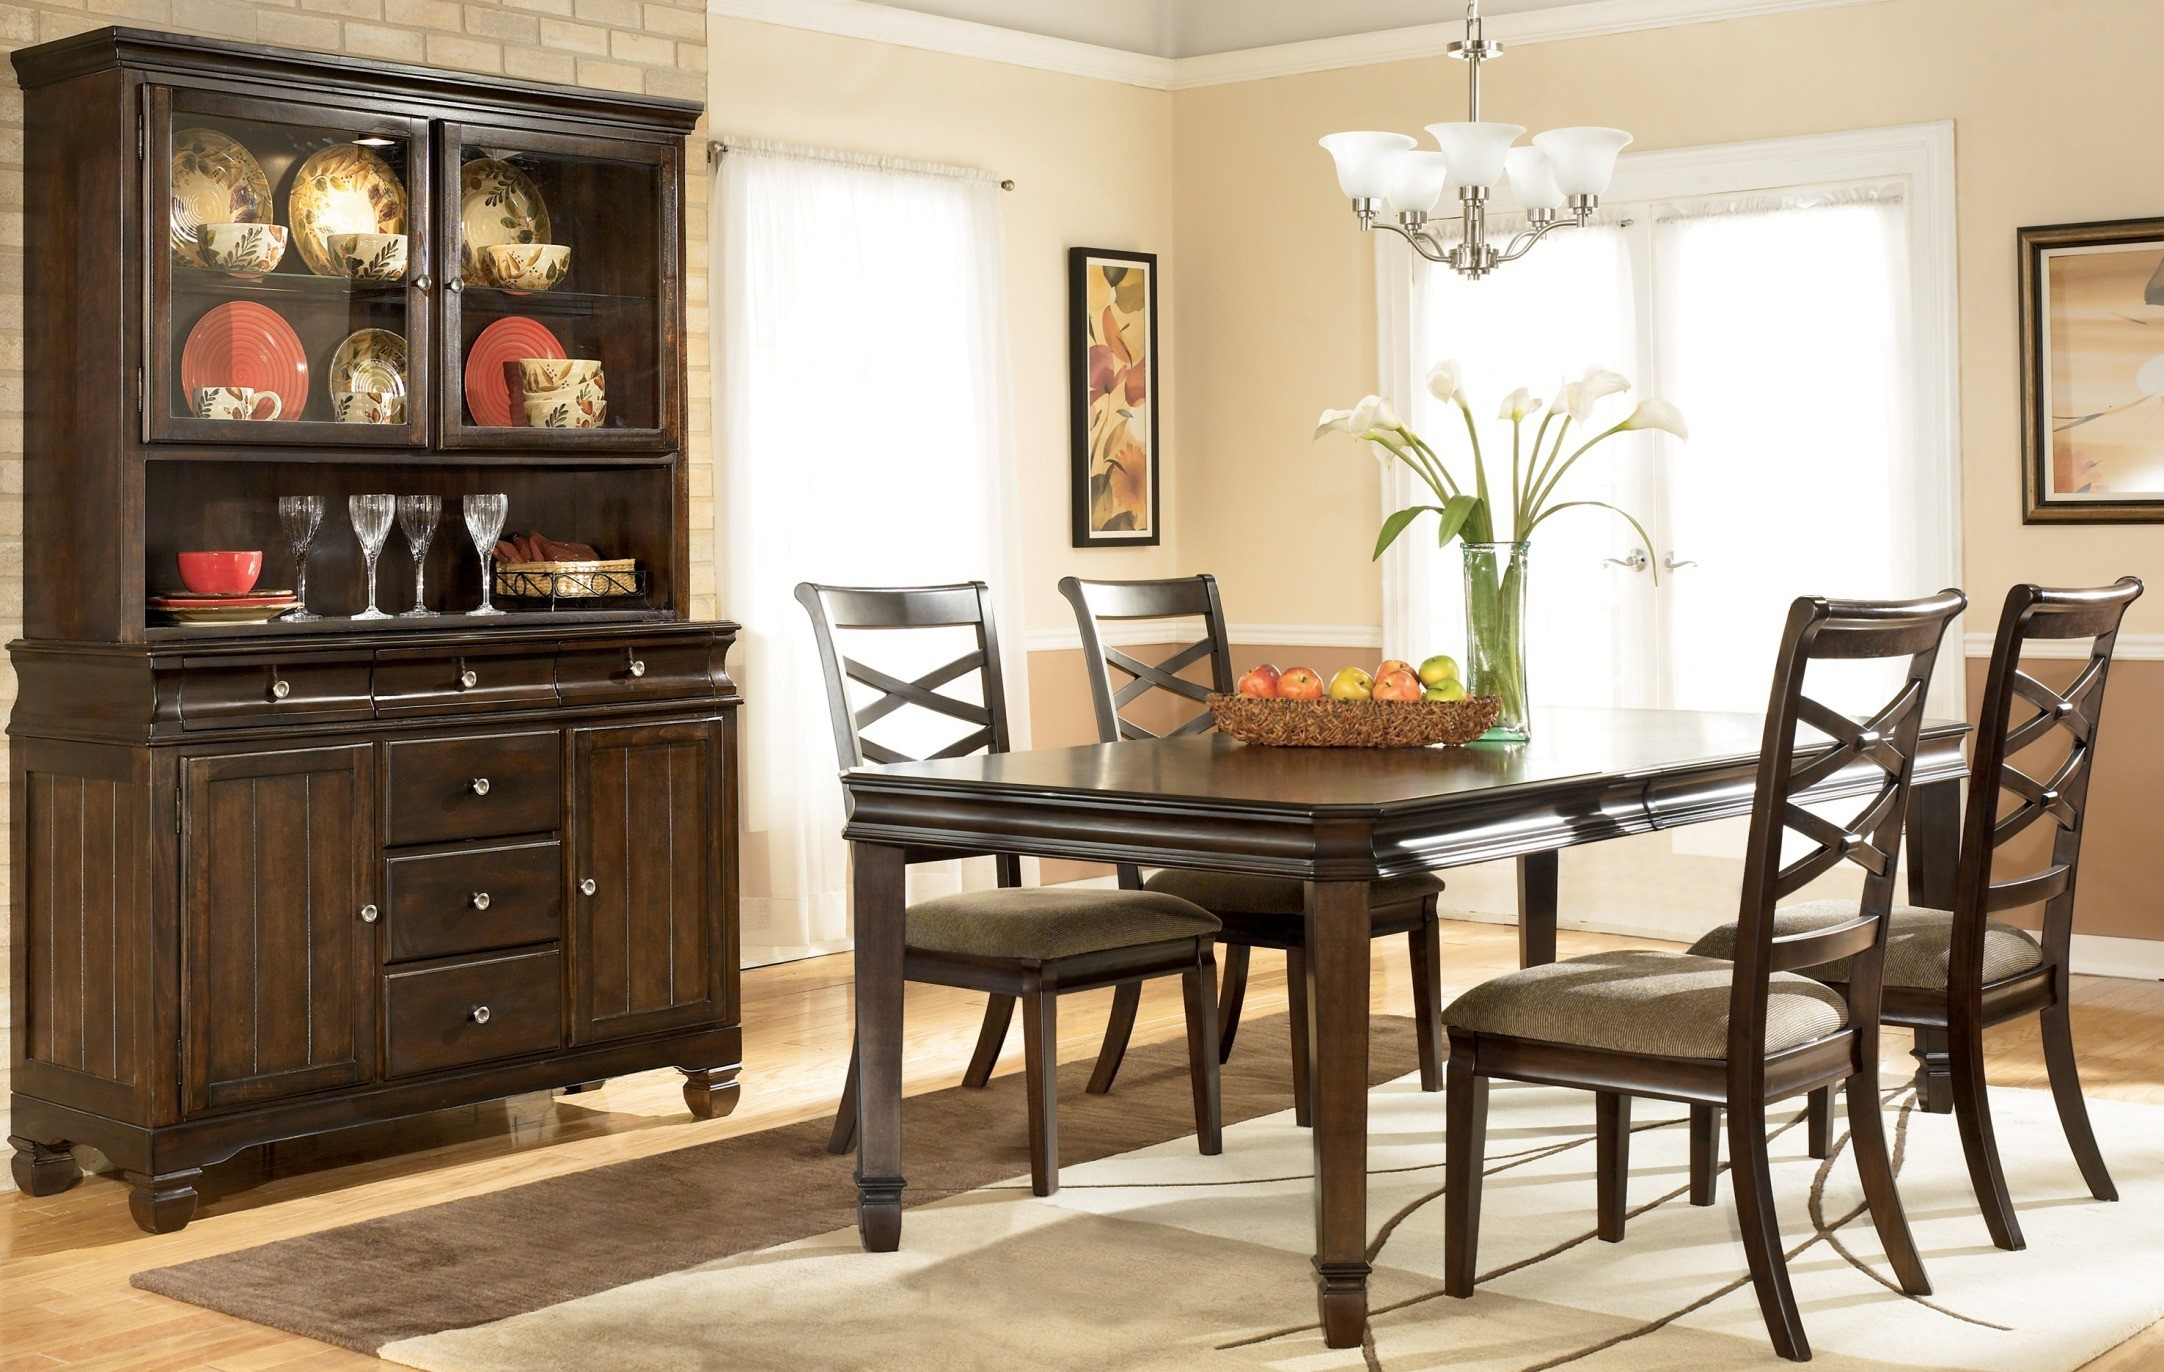 Hayley Dining Room Set from Ashley D480 Coleman Furniture : d480 35 014 80 8132 from colemanfurniture.com size 2164 x 1372 jpeg 621kB